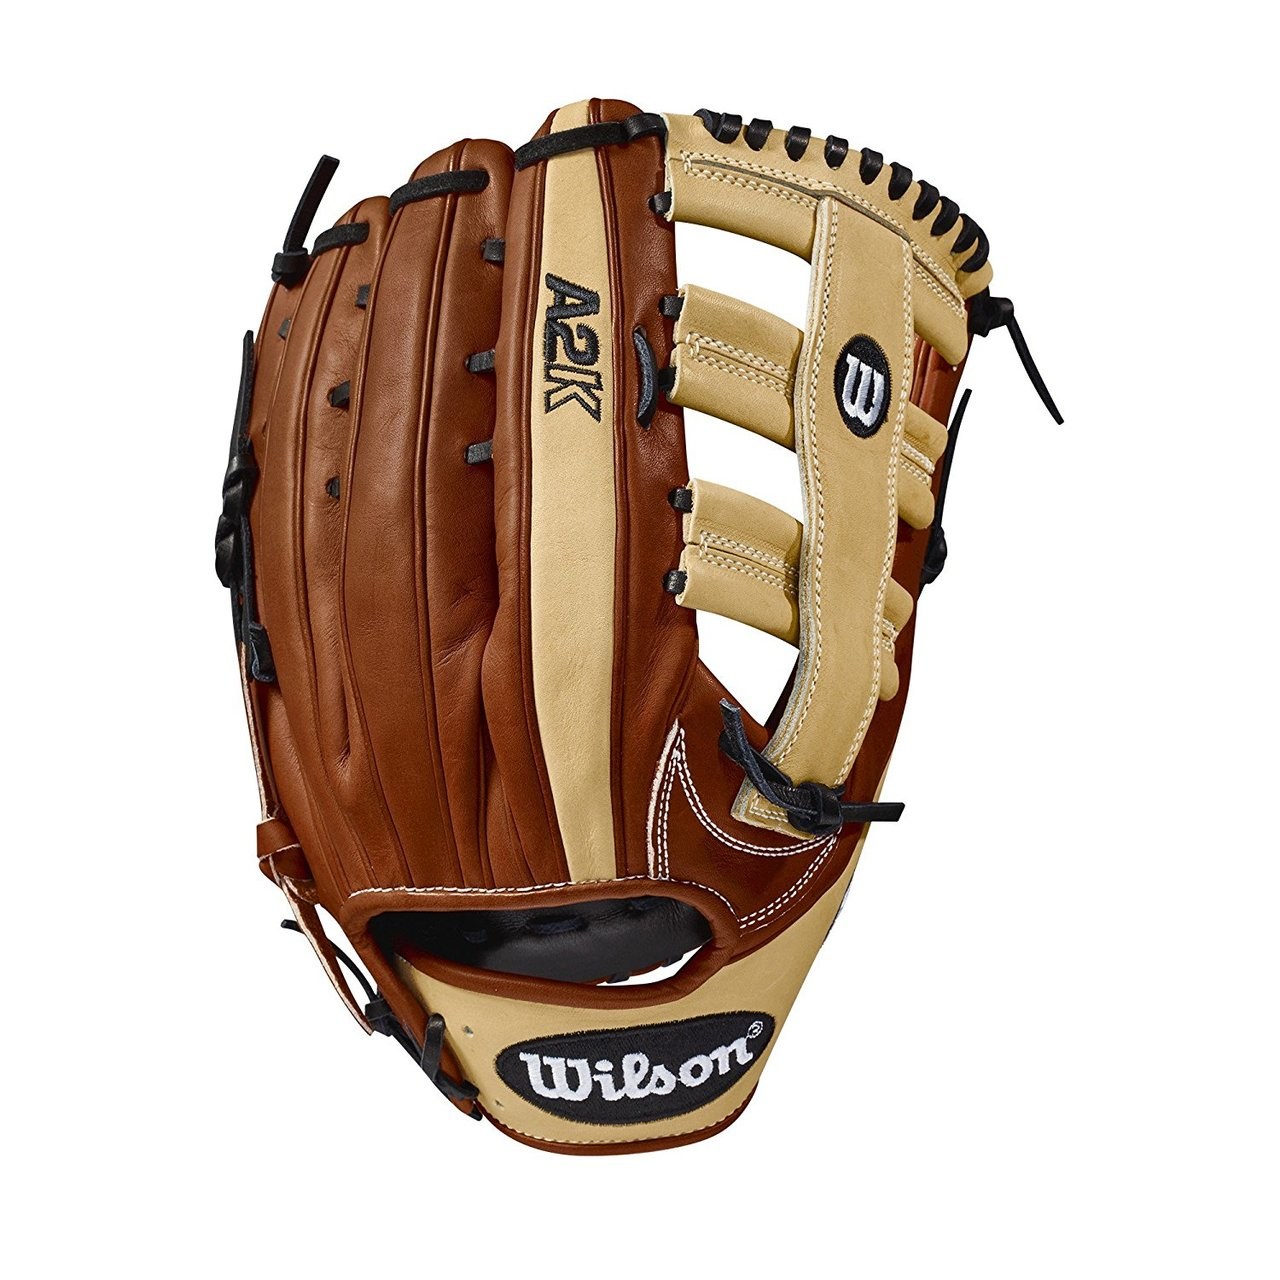 wilson-2018-a2k-1775-outfield-baseball-glove-right-hand-throw-12-75-inch WTA2KRB181775-RightHandThrow Wilson 887768612207